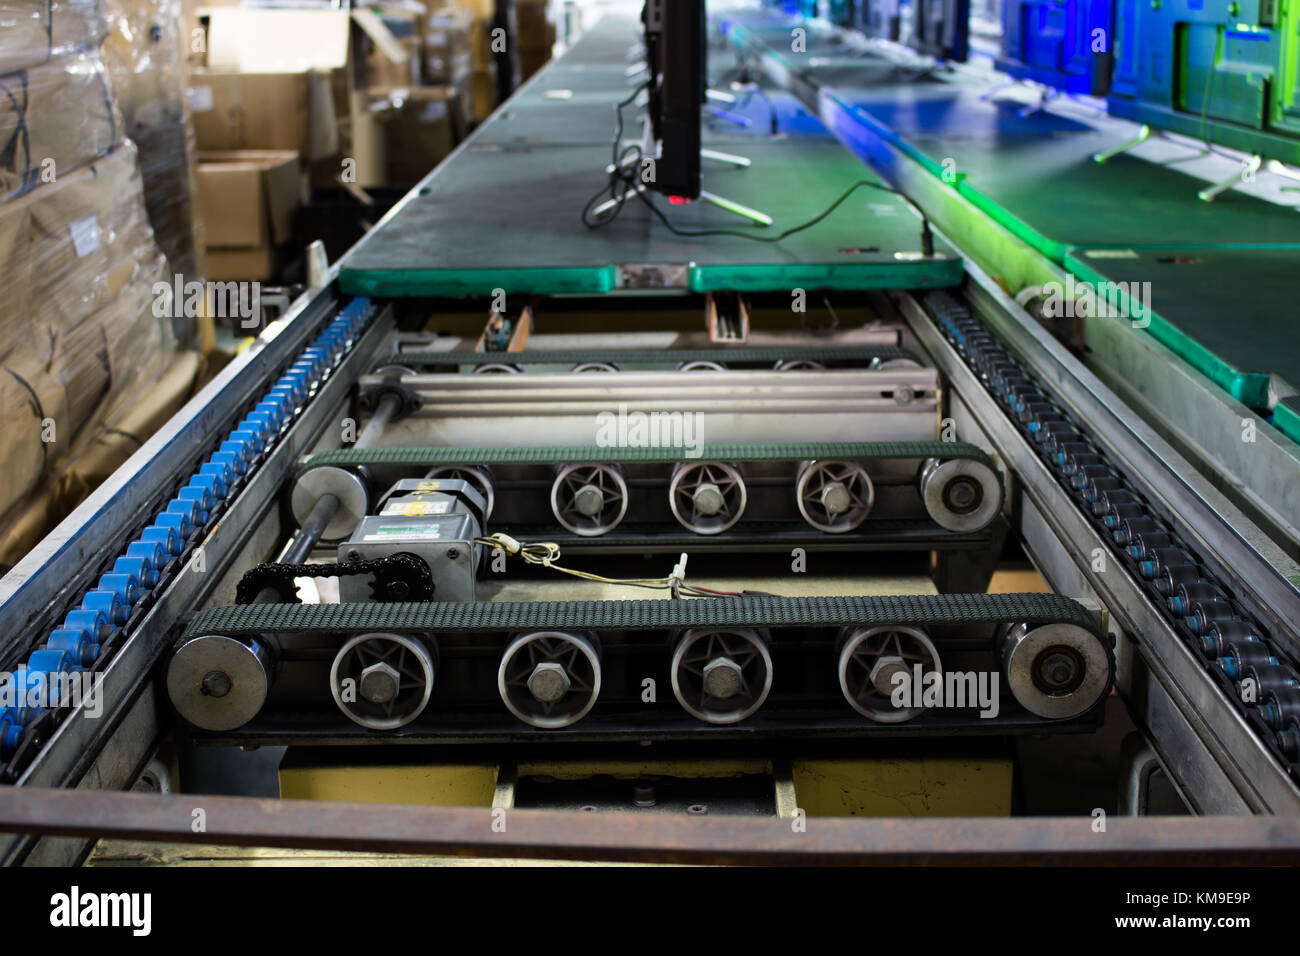 Belt, Conveyor belt, production line of the factory - Stock Image